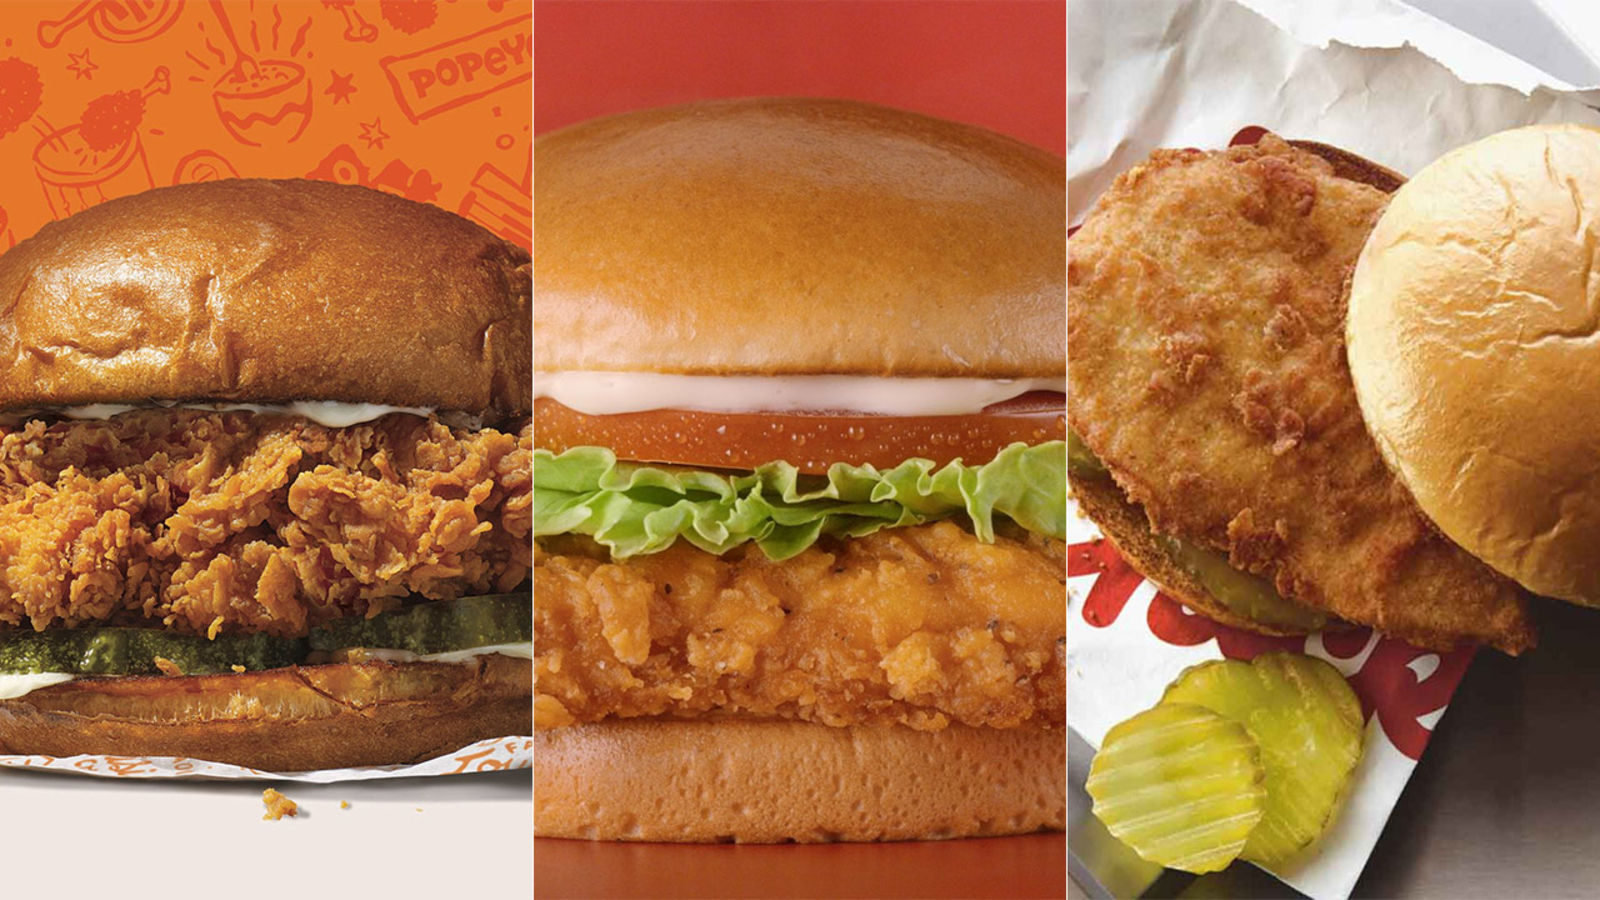 #ChickenWars: Popeyes, Wendy's, Chick-fil-A battle on social media over best chicken sandwich